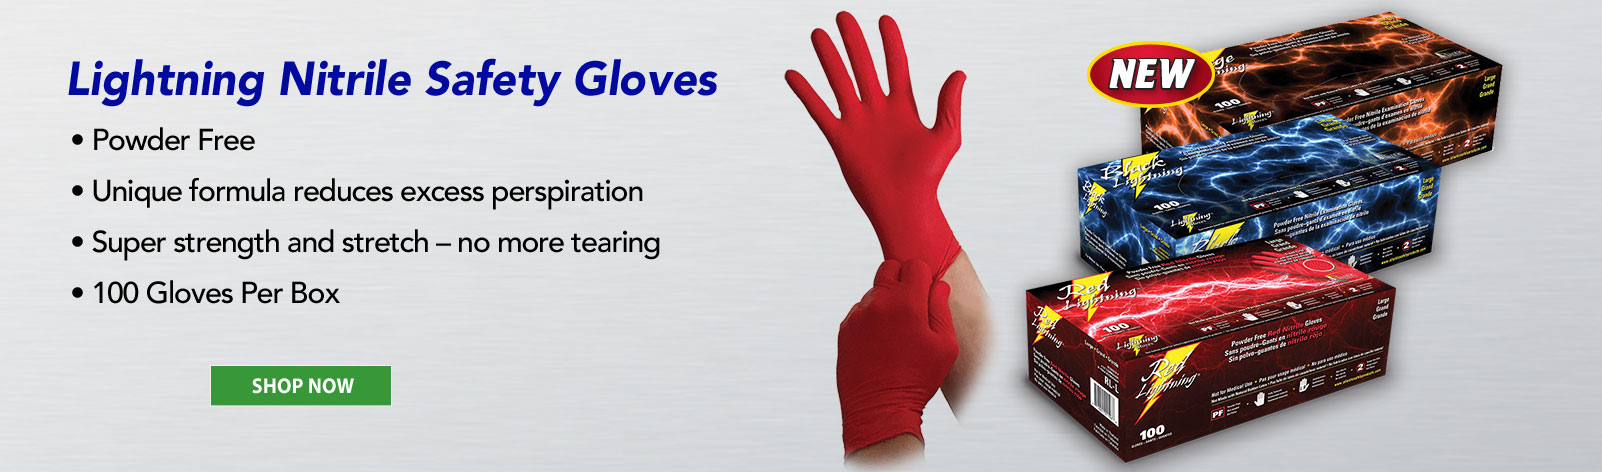 Lightning Nitrile Safety Gloves